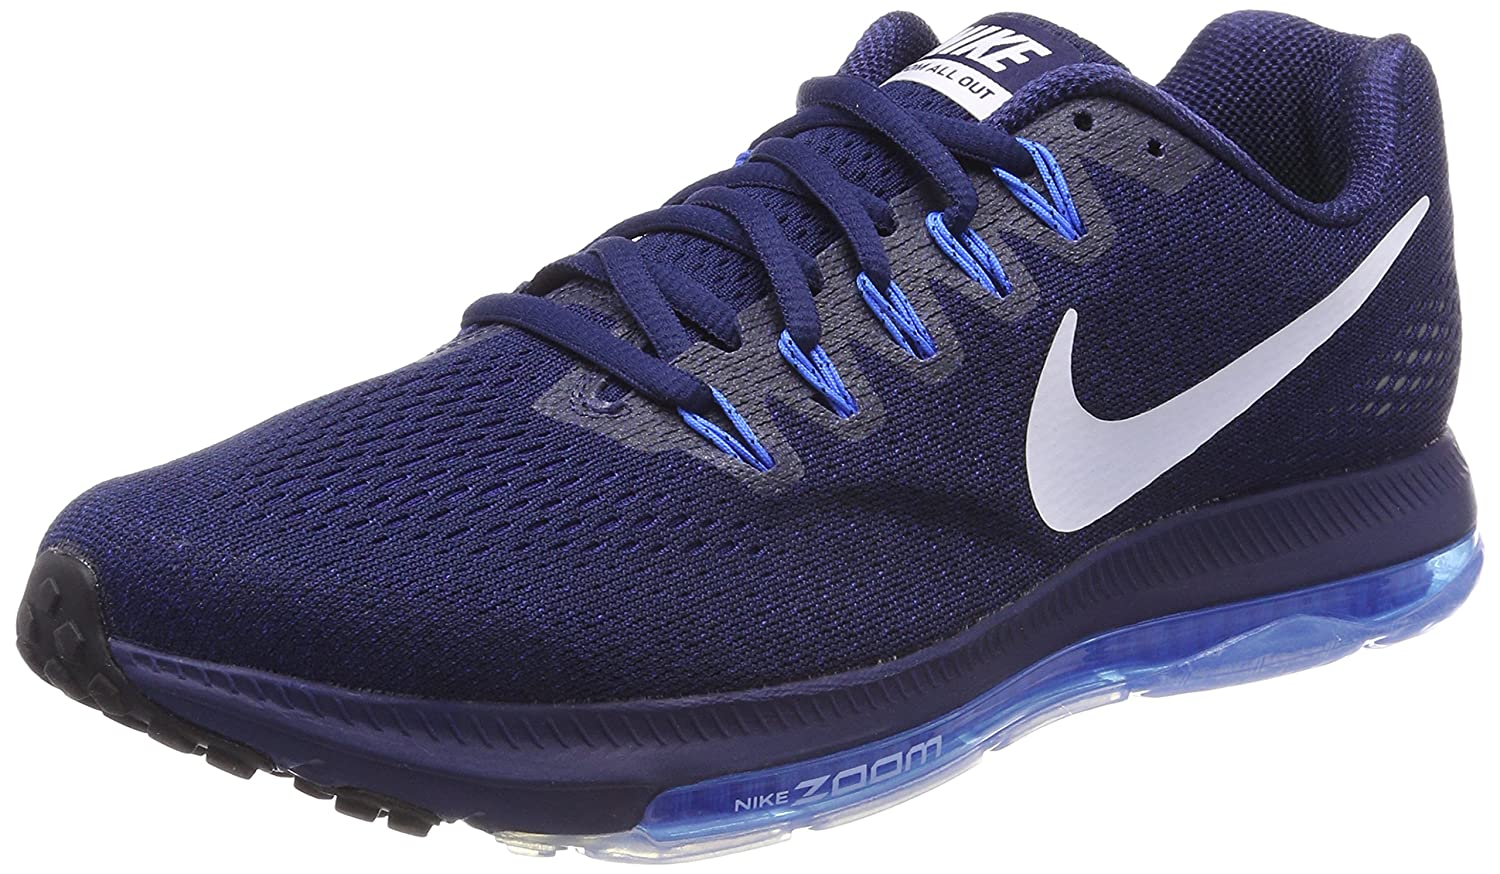 NIKE Zoom All Out Low Men's Running Sneaker B01M59KUZ5 12 D(M) US|Binary Blue White Photo Blue 401